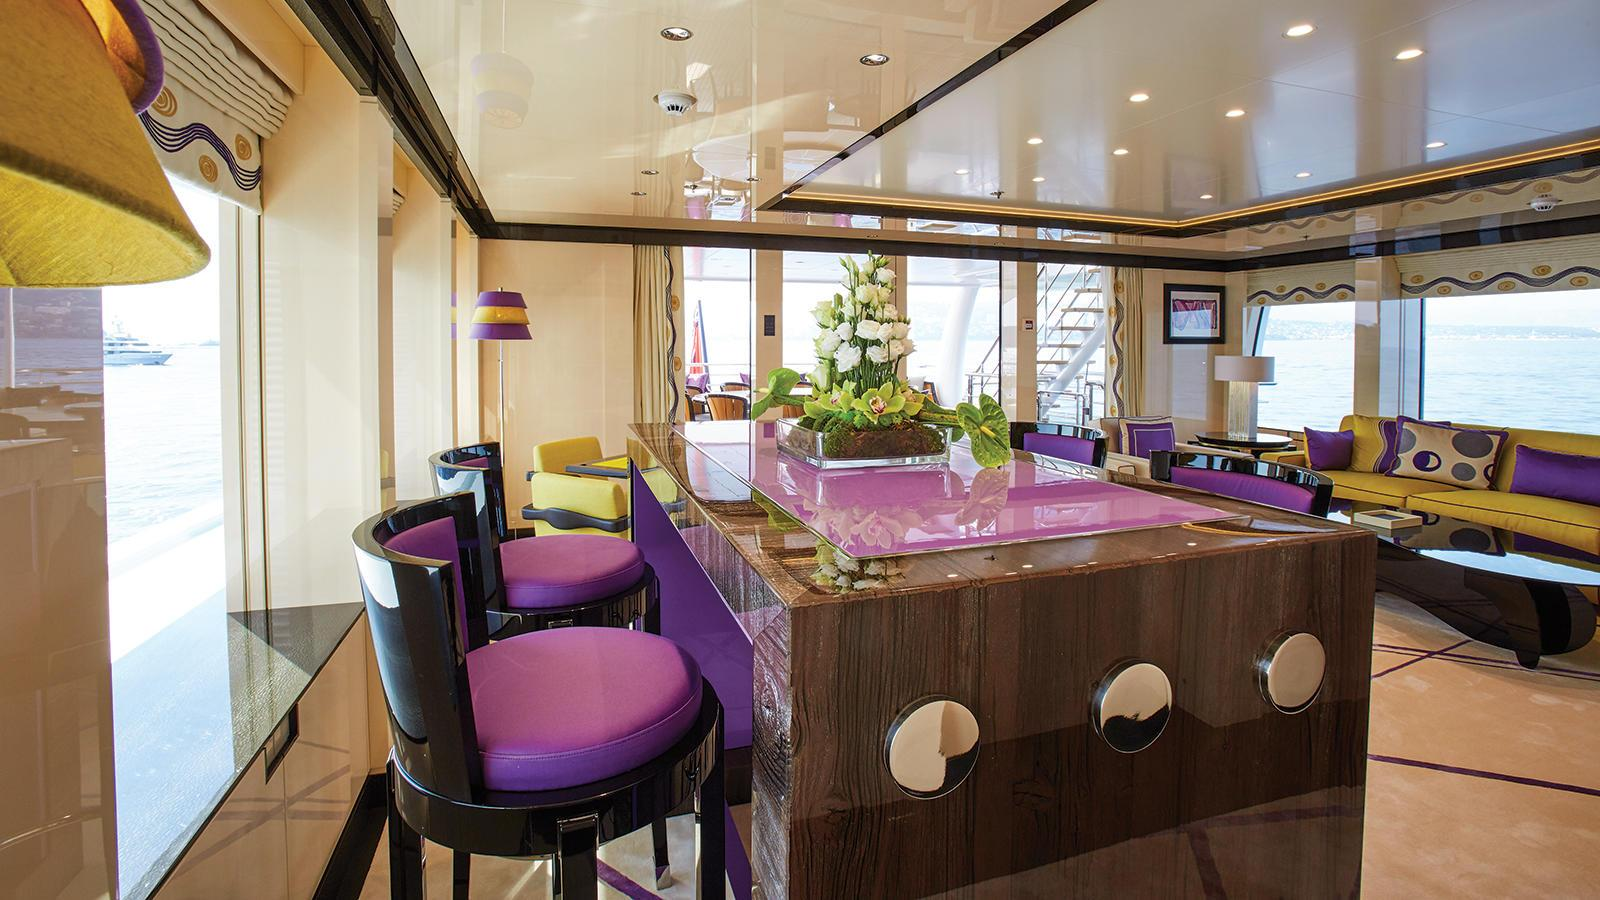 madame-kate-motor-yacht-amels-1999-62m-2015-purple-saloon